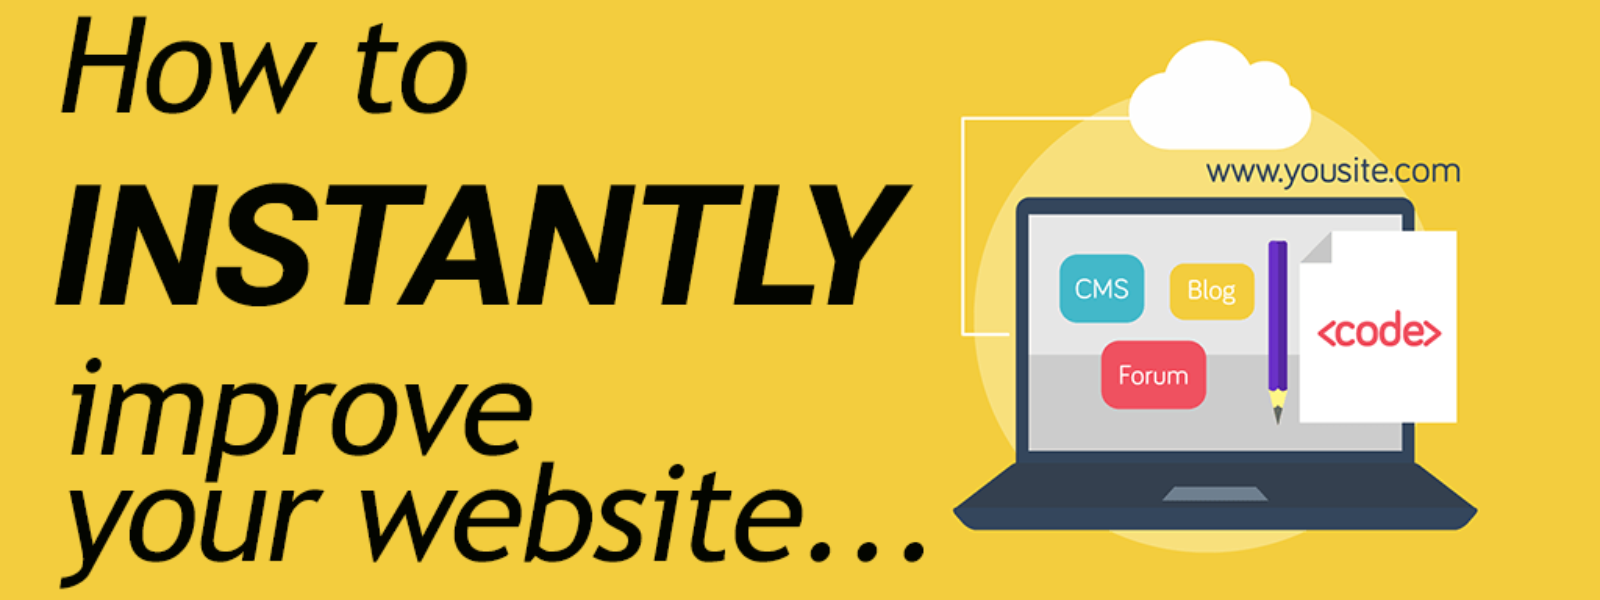 Instantly improve your website!